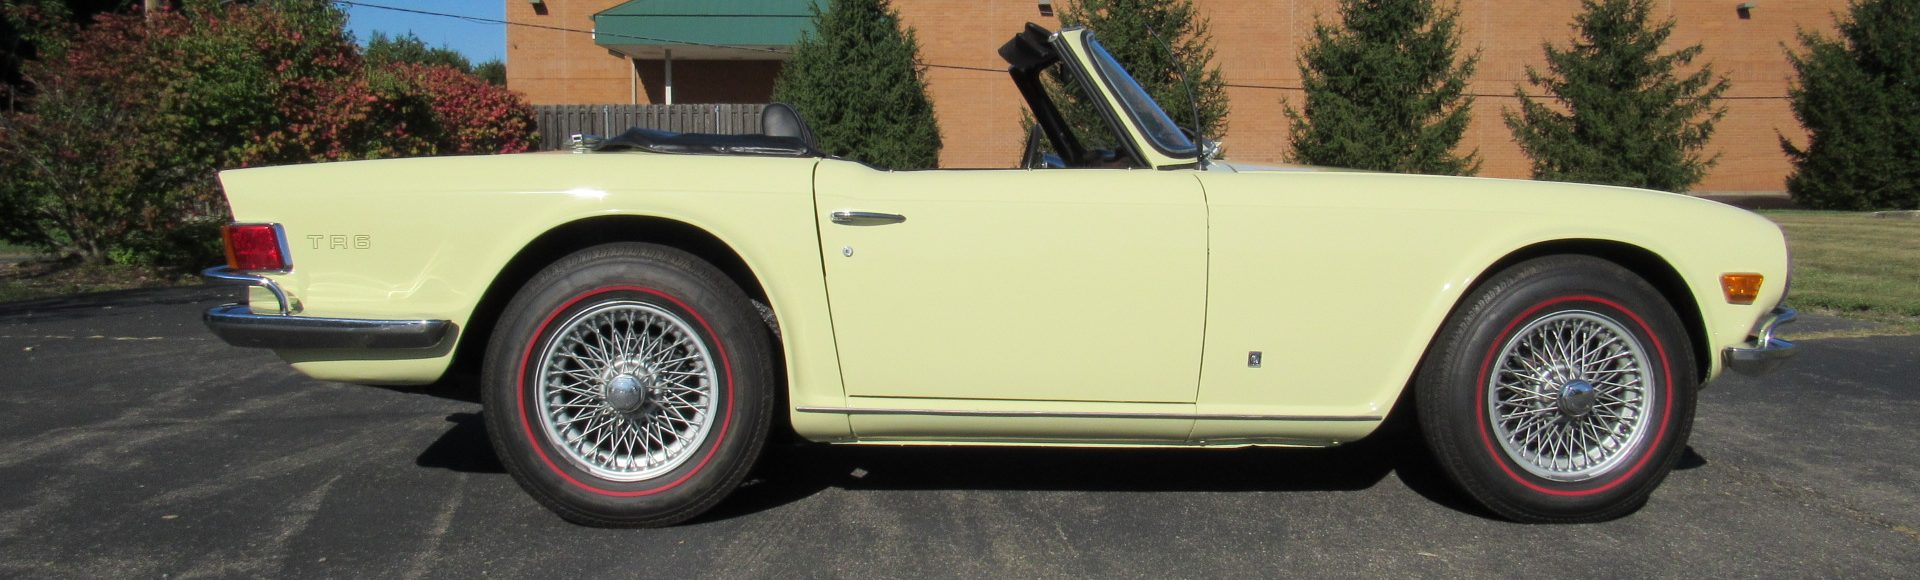 1971 Triumph TR6, Restored, 4 Speed, SOLD!